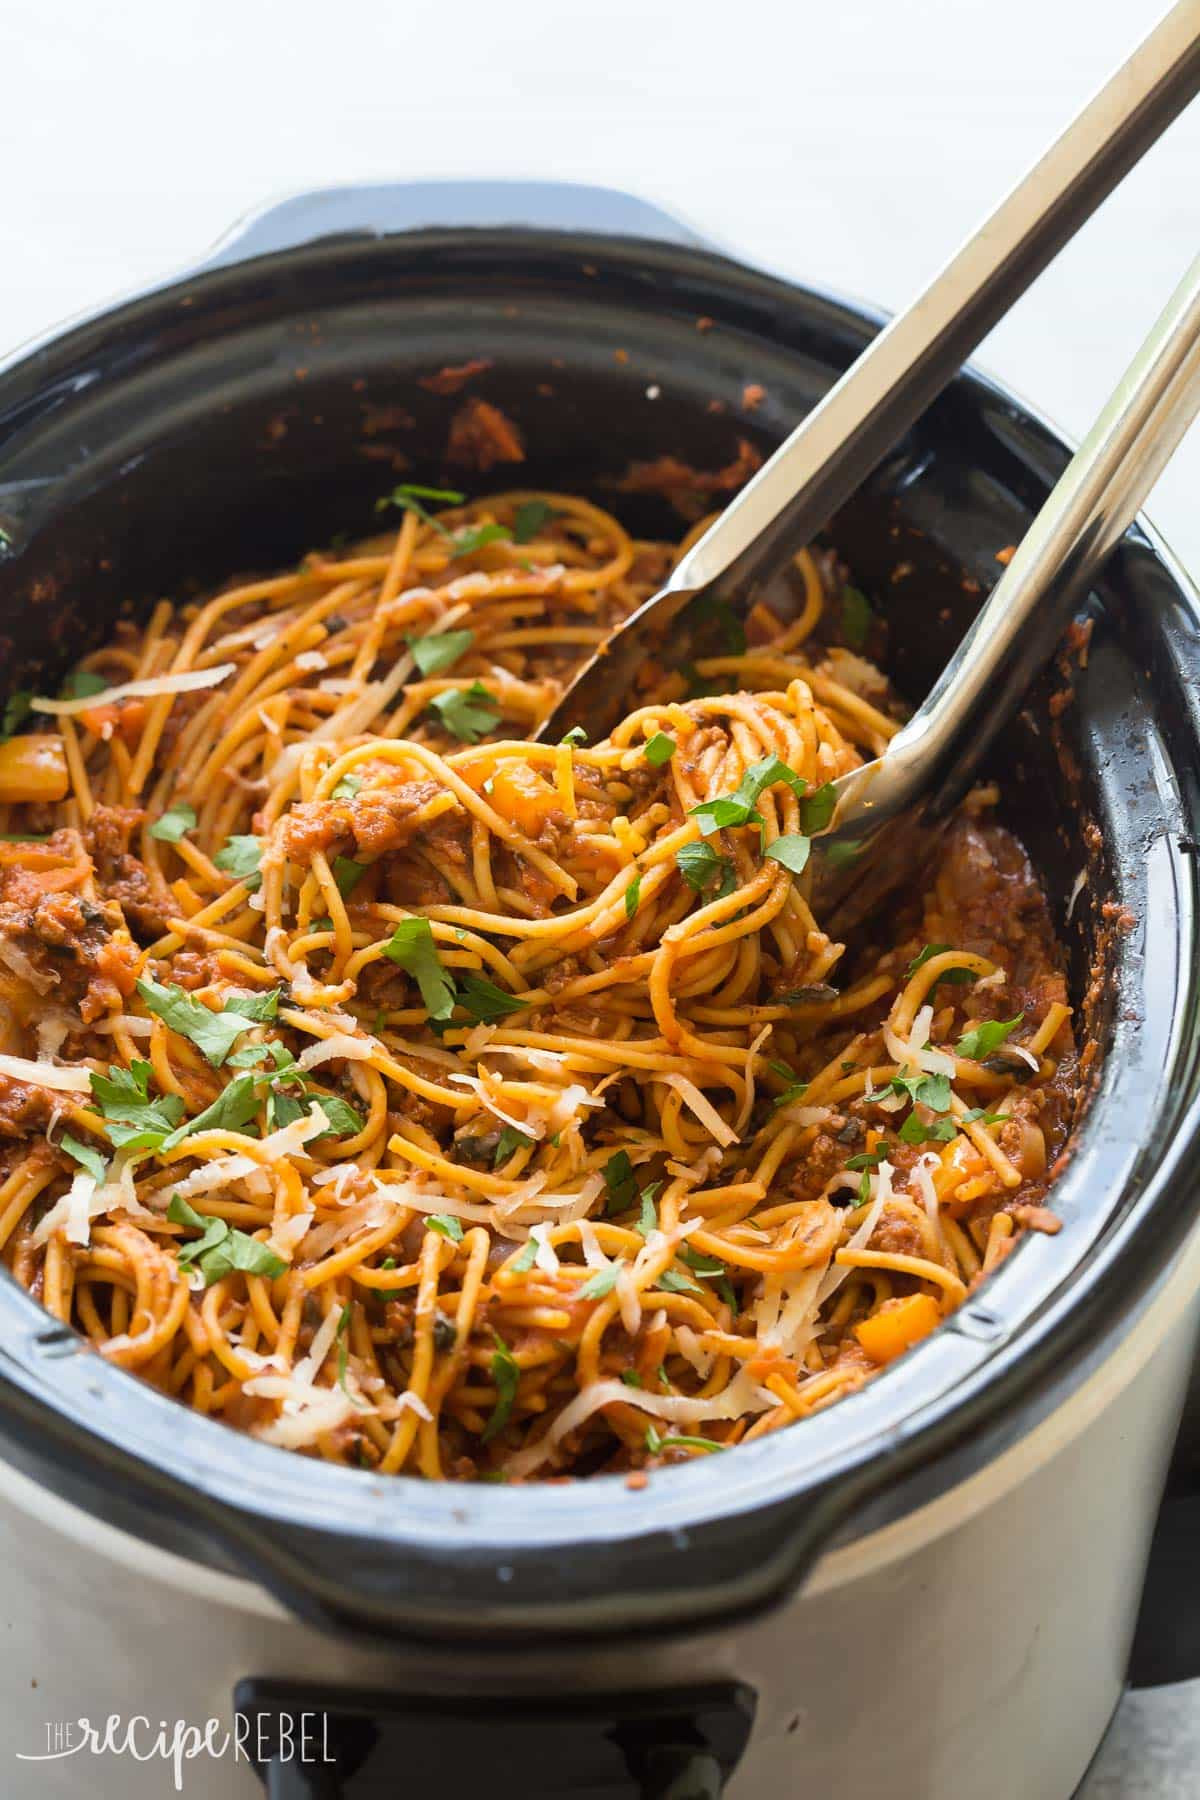 Healthy Slow Cooker Dinner Recipes  Healthier Slow Cooker Spaghetti and Meat Sauce VIDEO